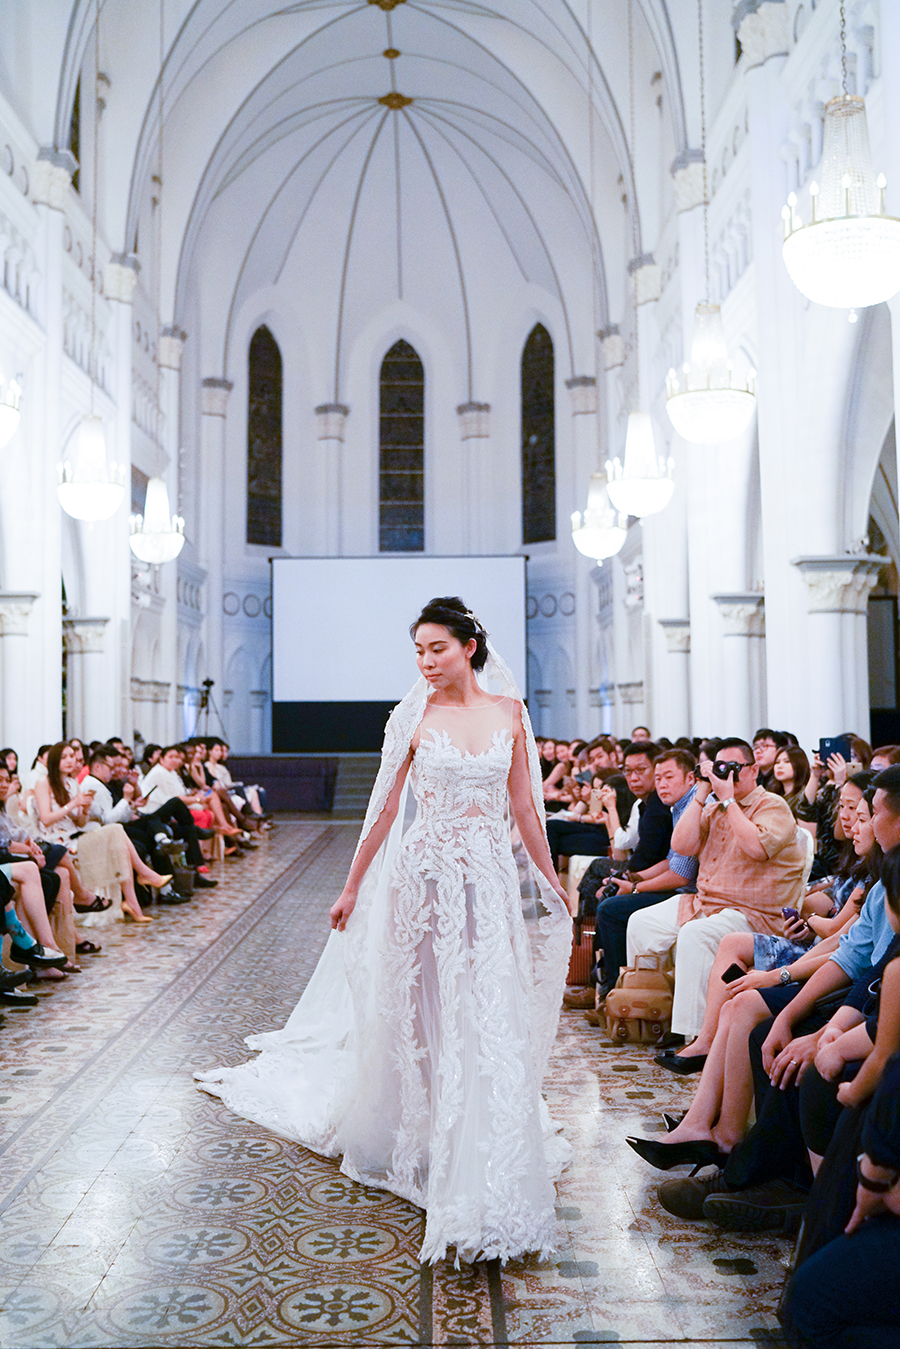 38-The-Wedding-Scoop-Rebecca-Caroline-Bridal-Singapore